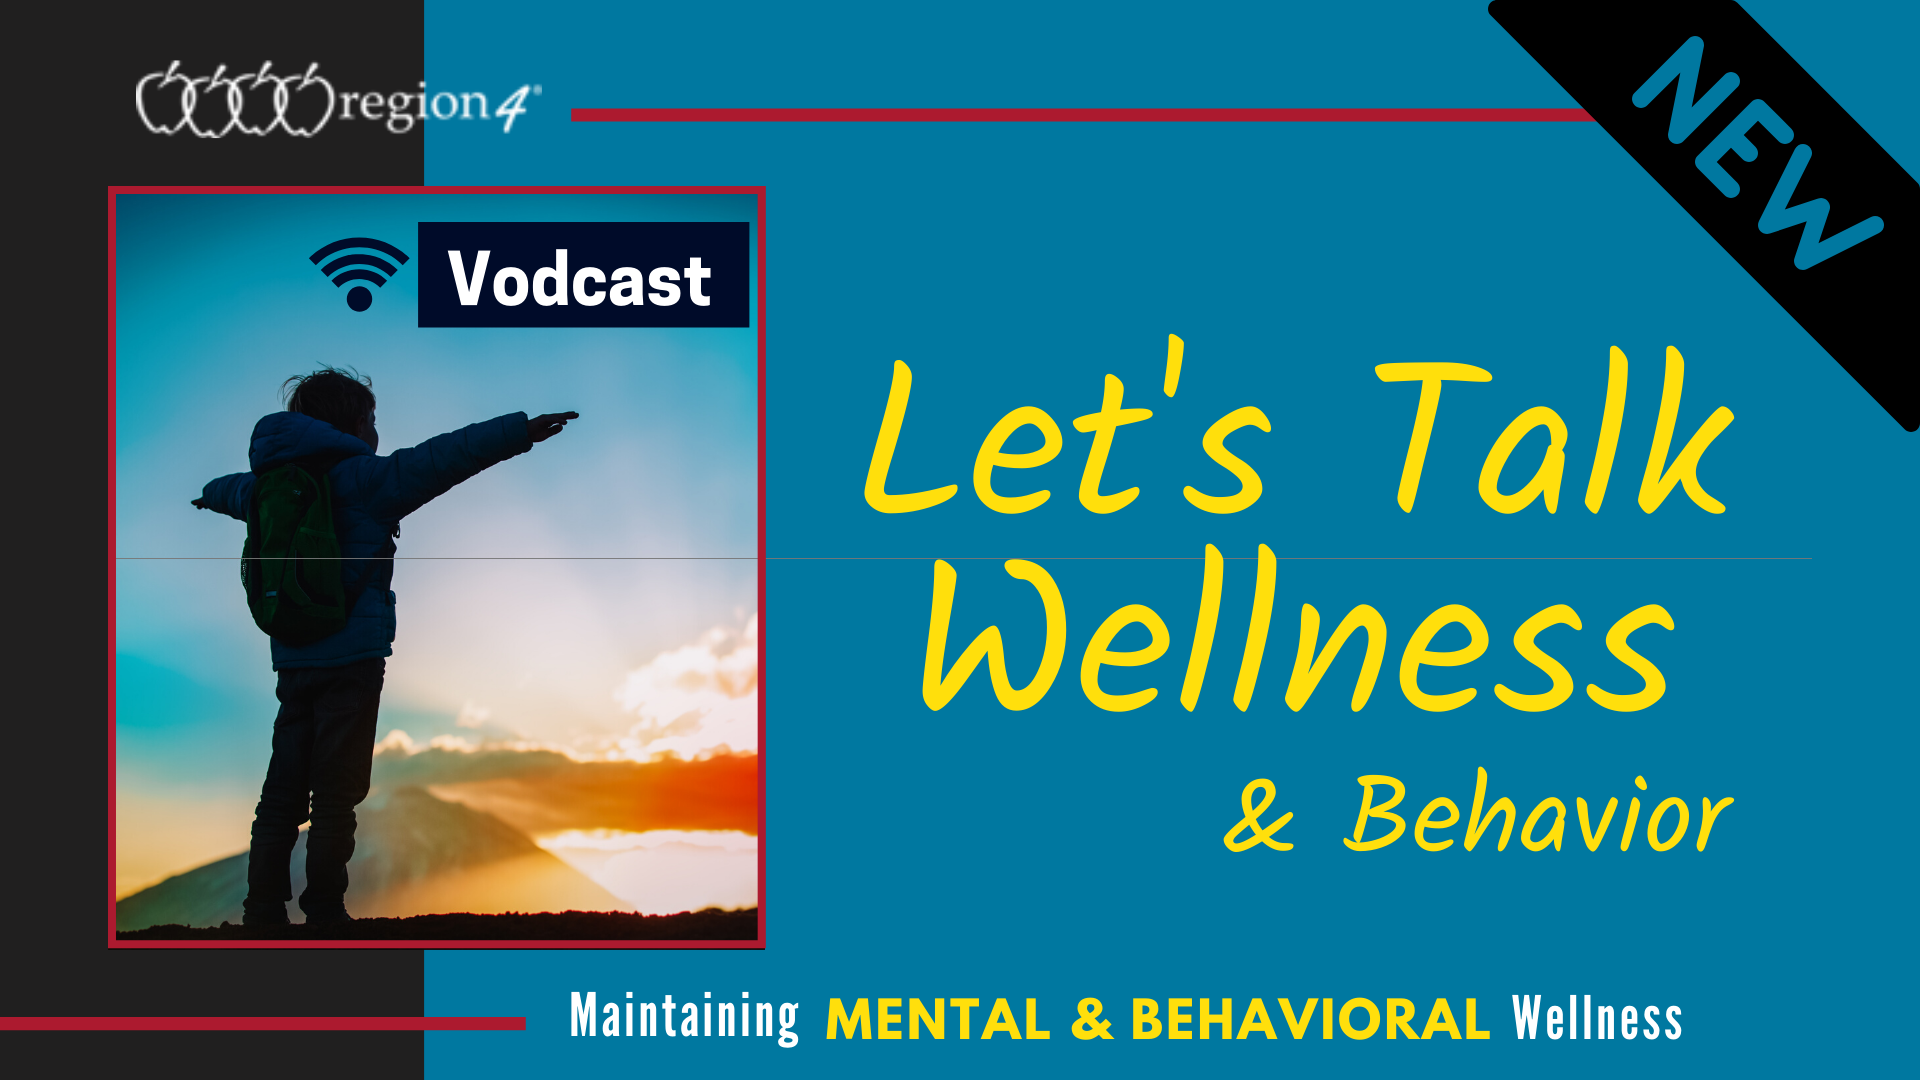 Check out our Let's Talk Wellness and Behavior Vodcast